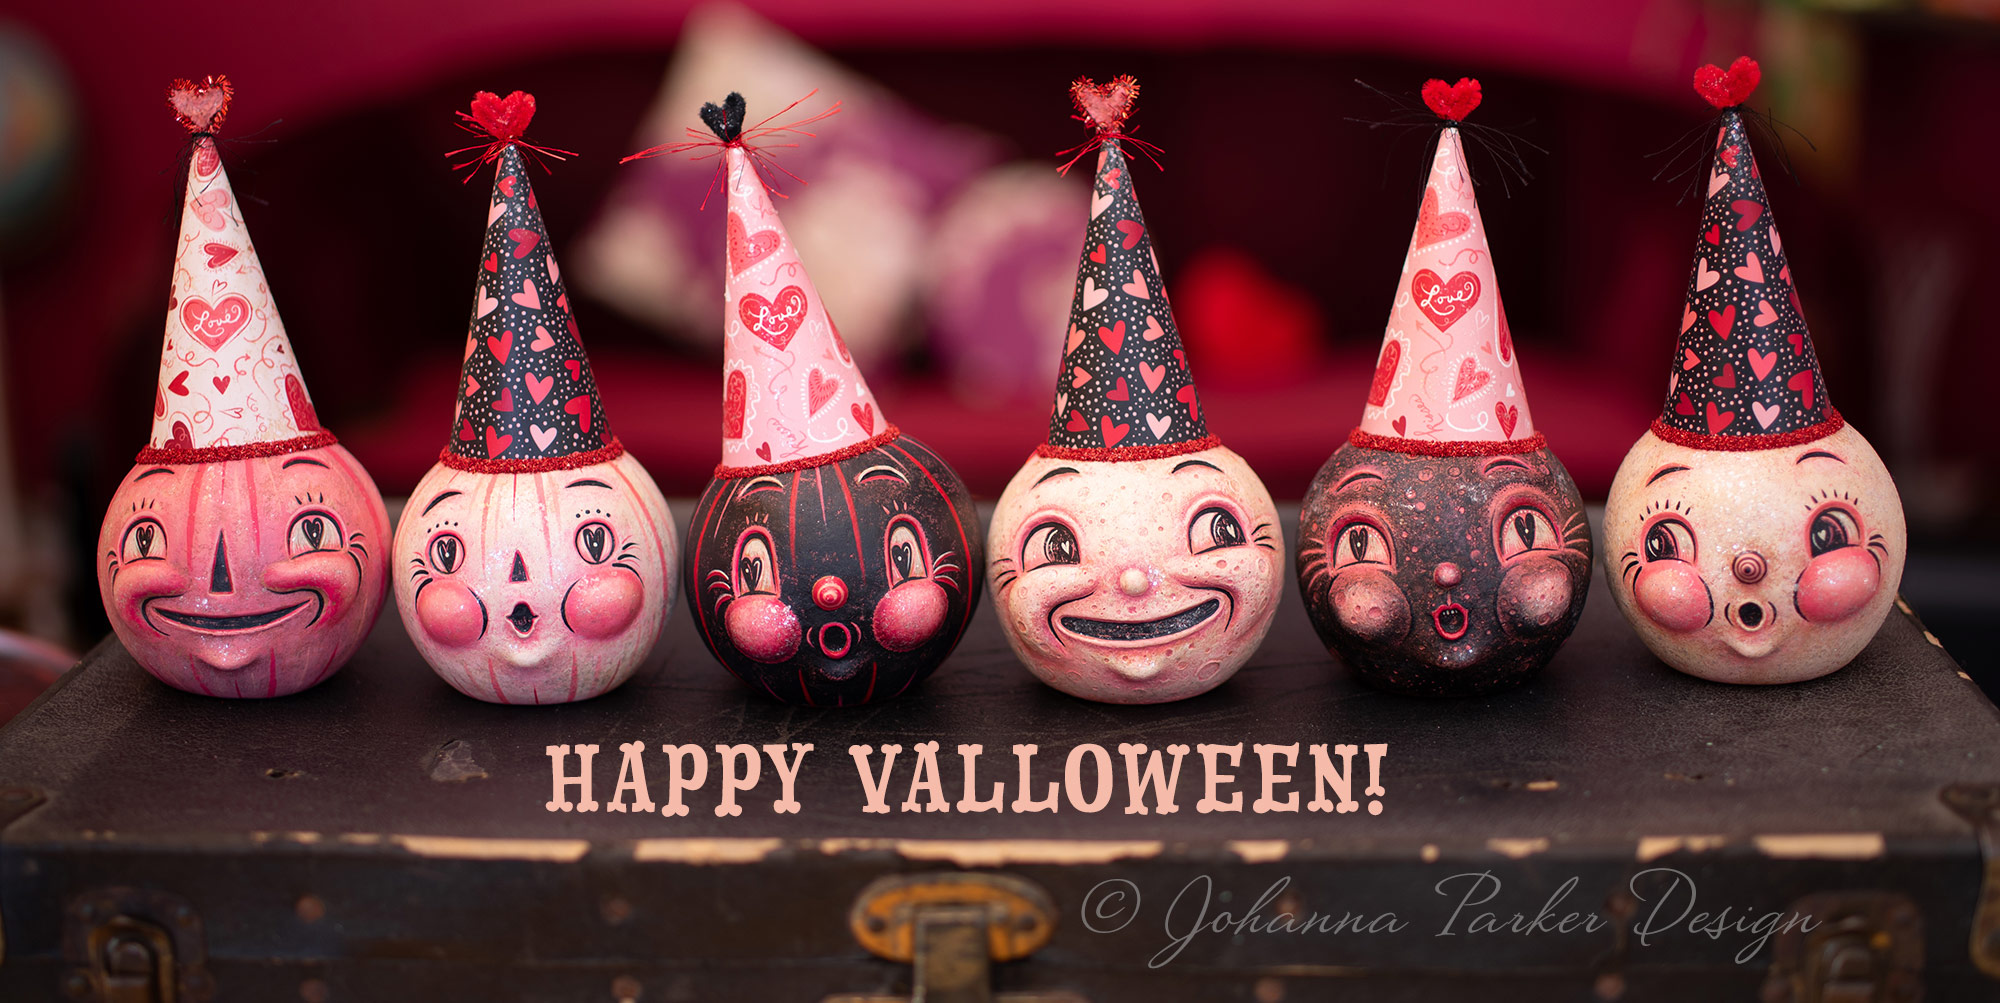 < BACK to the Valloween Collection